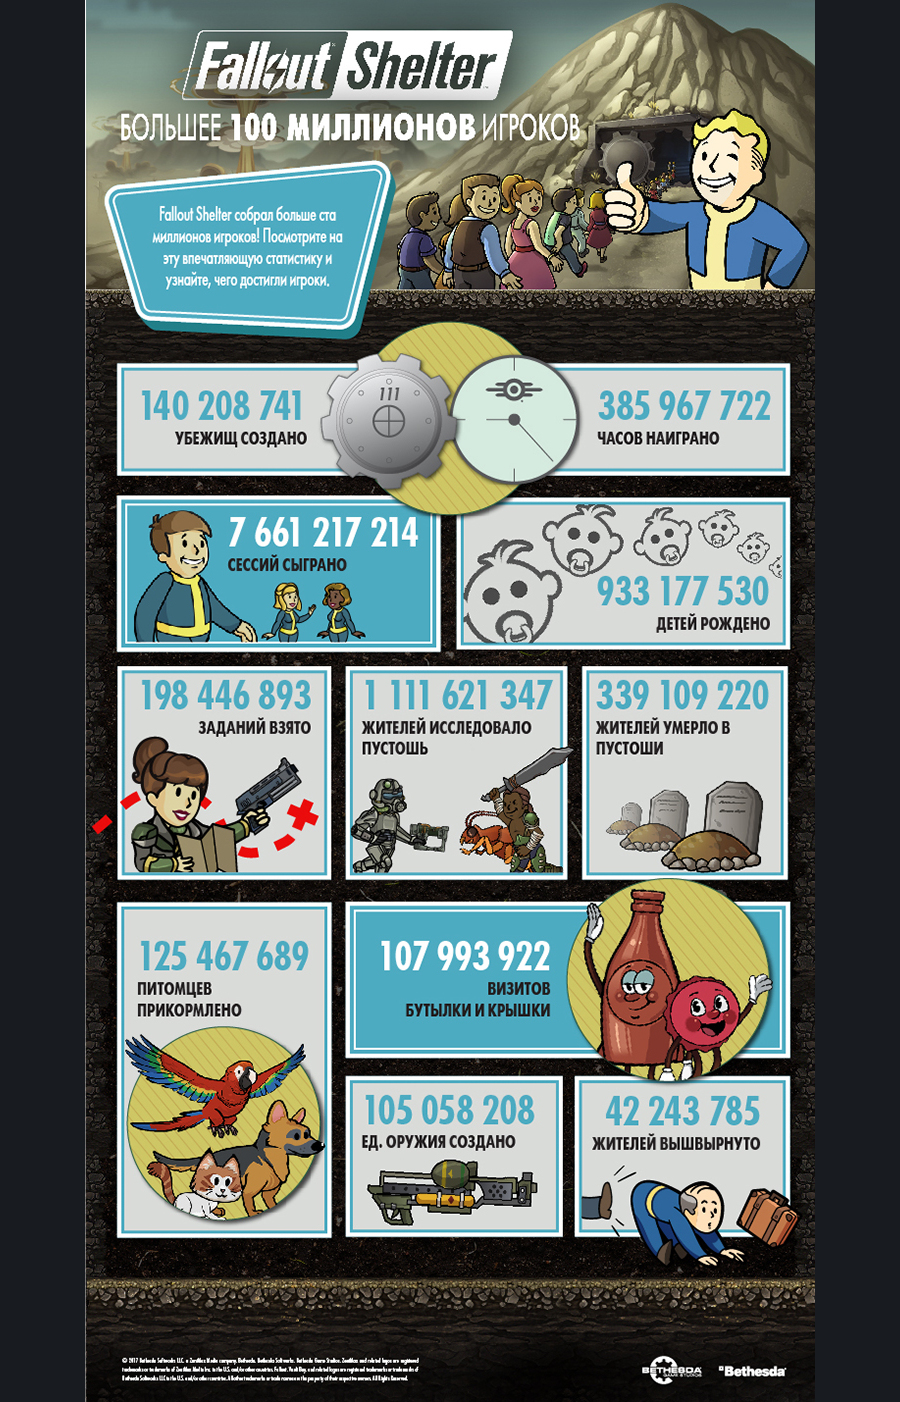 Fallout-shelter-1505482068216629